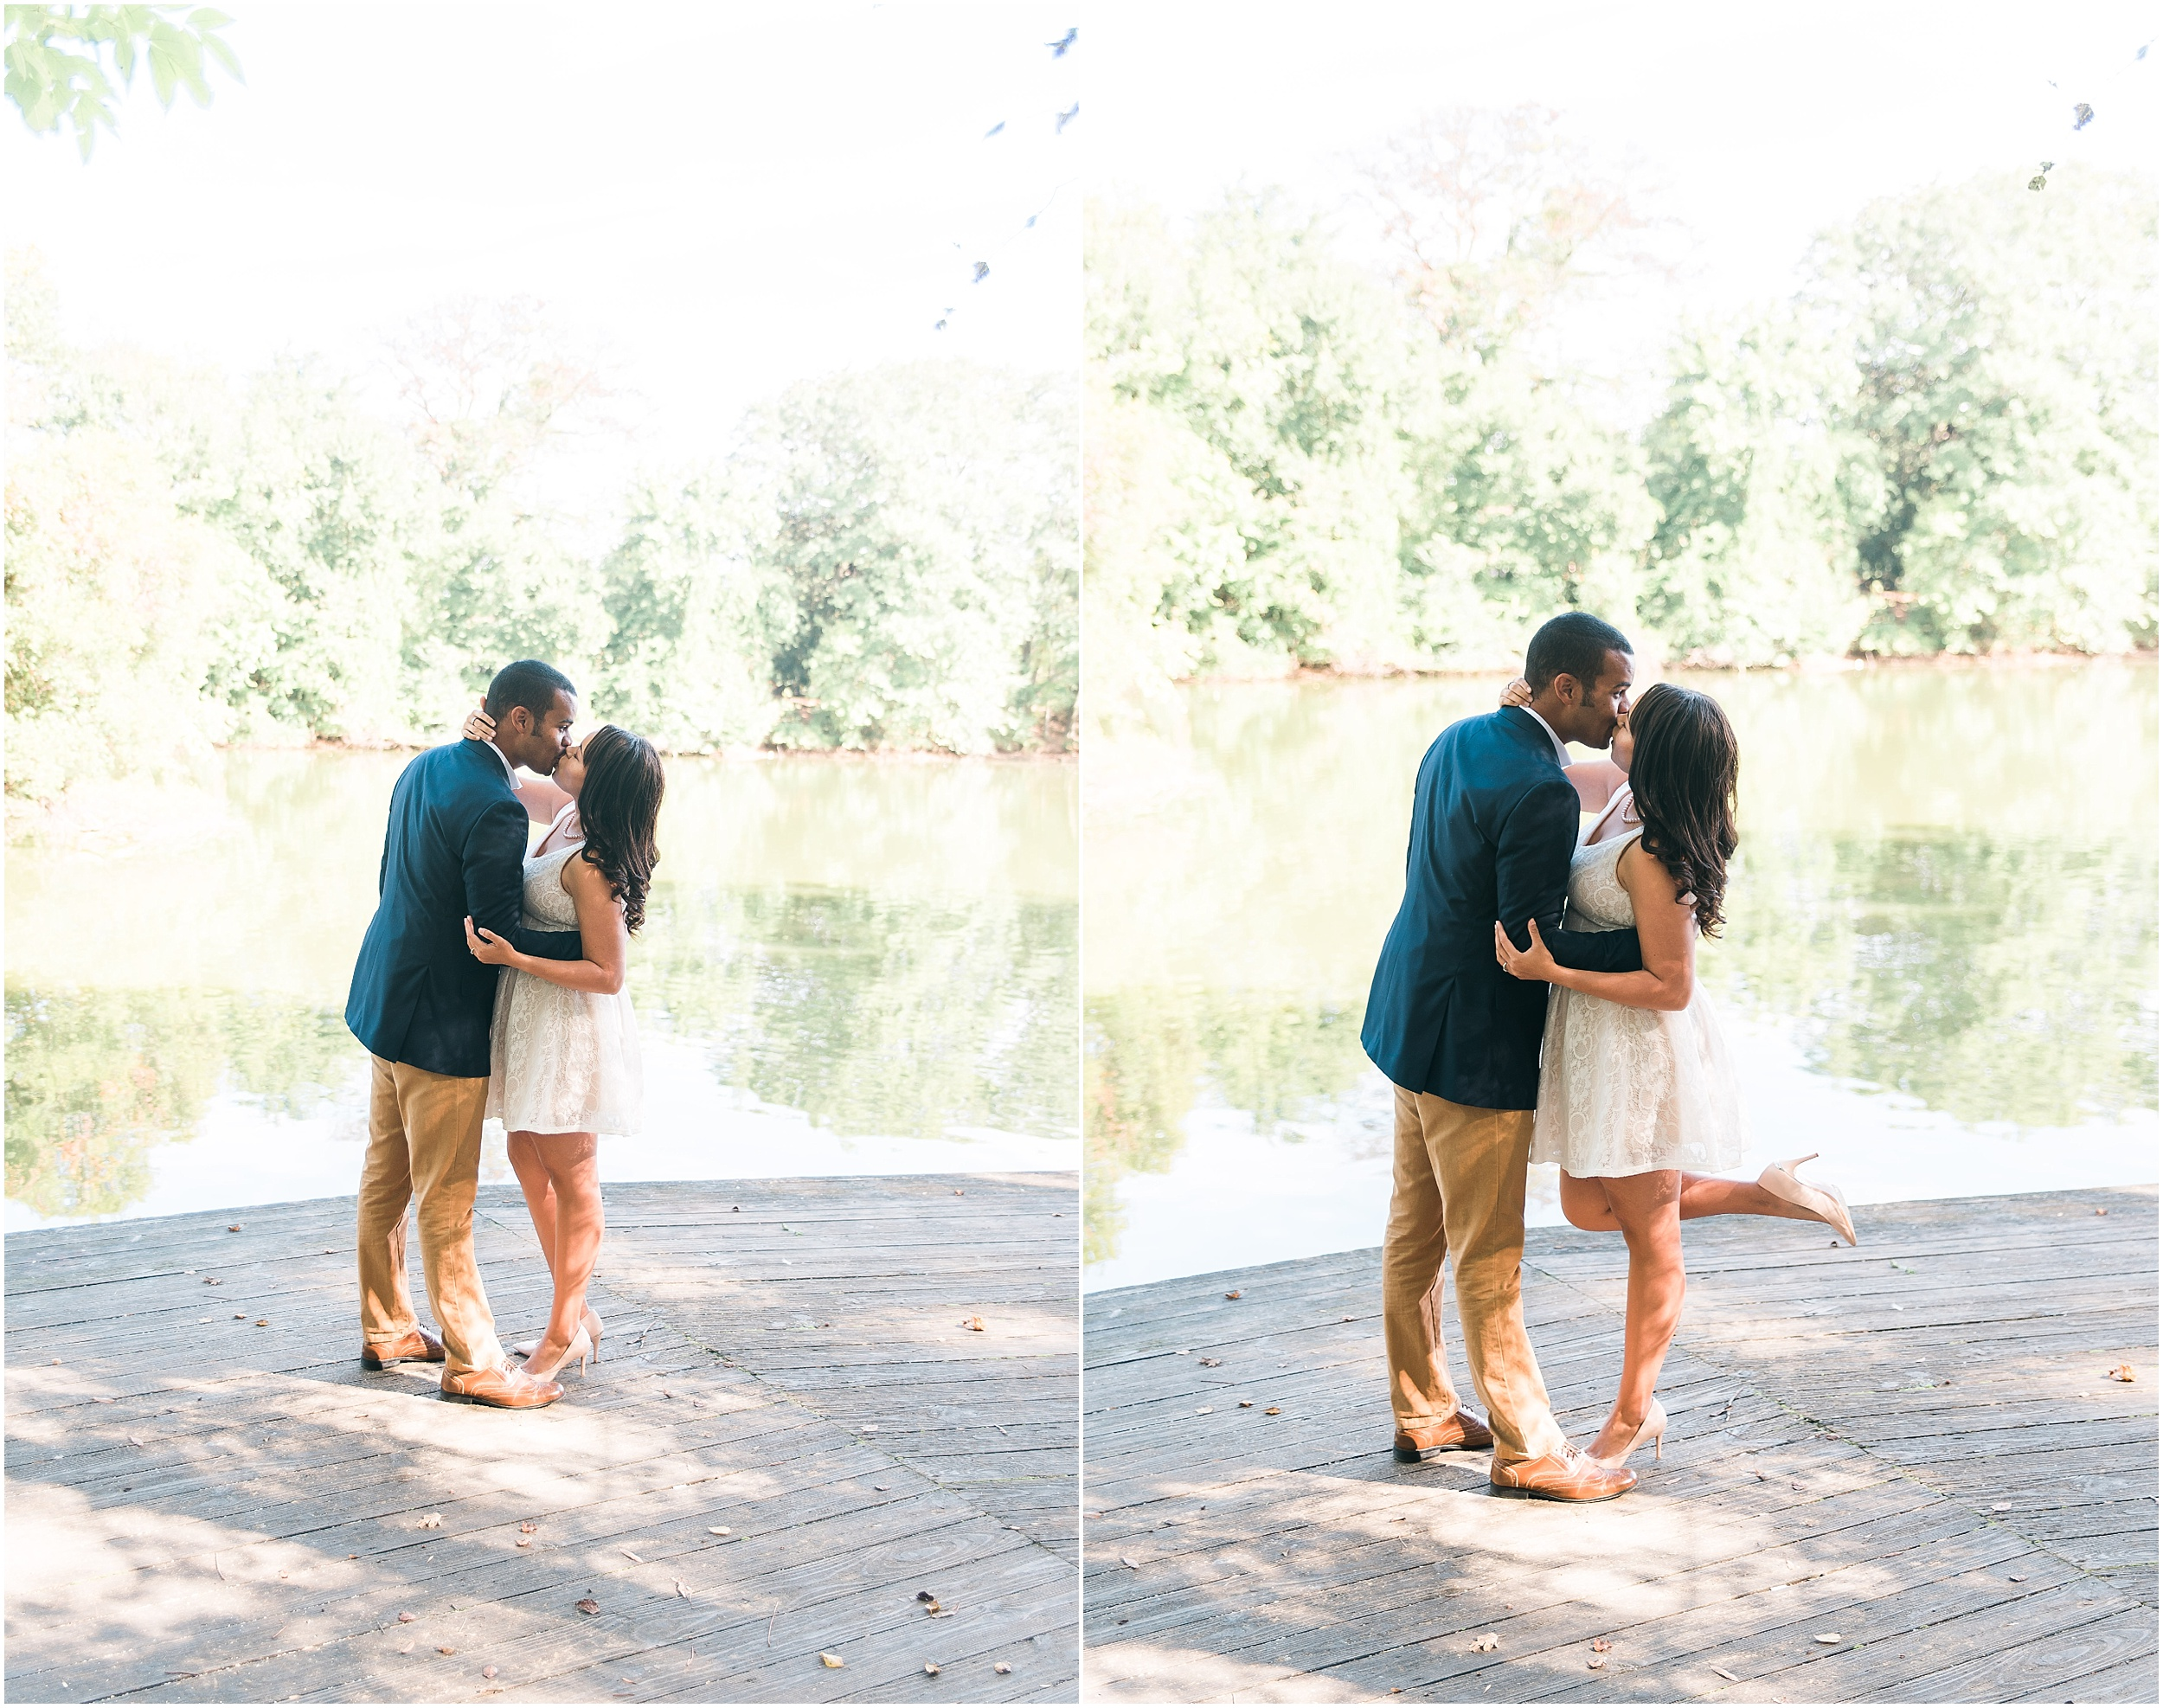 Tallahassee Florida Wedding, Matt and Lindsey Engagement Session at Piedmont Park, Atlanta Georgia_0002.jpg